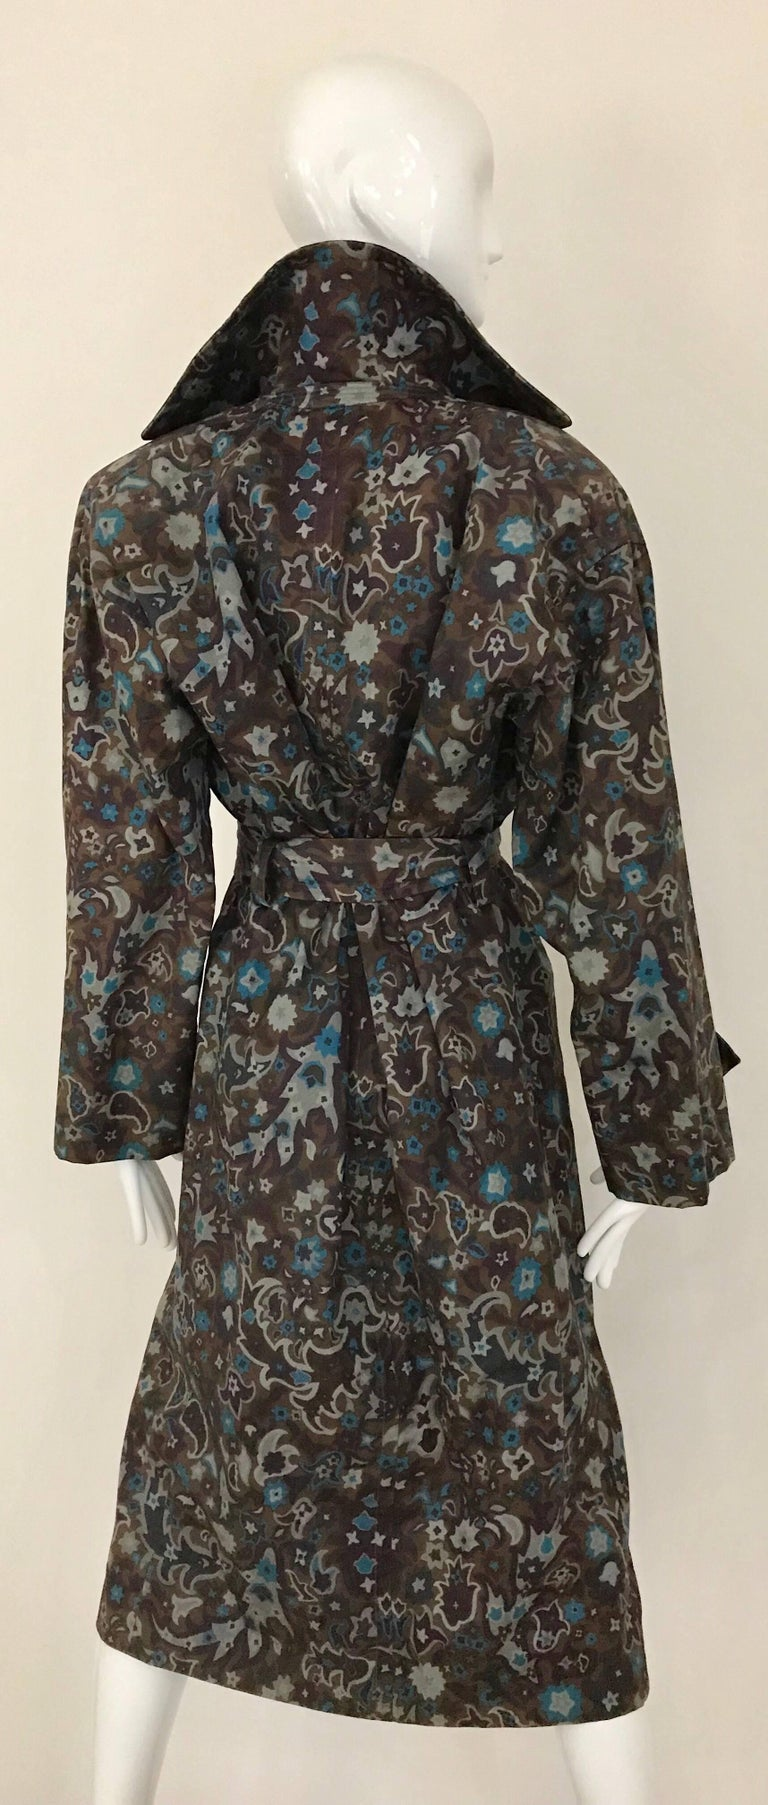 1970s Saint Laurent Brown, Teal and Grey Paisley Print vintage Trench Coat For Sale 4